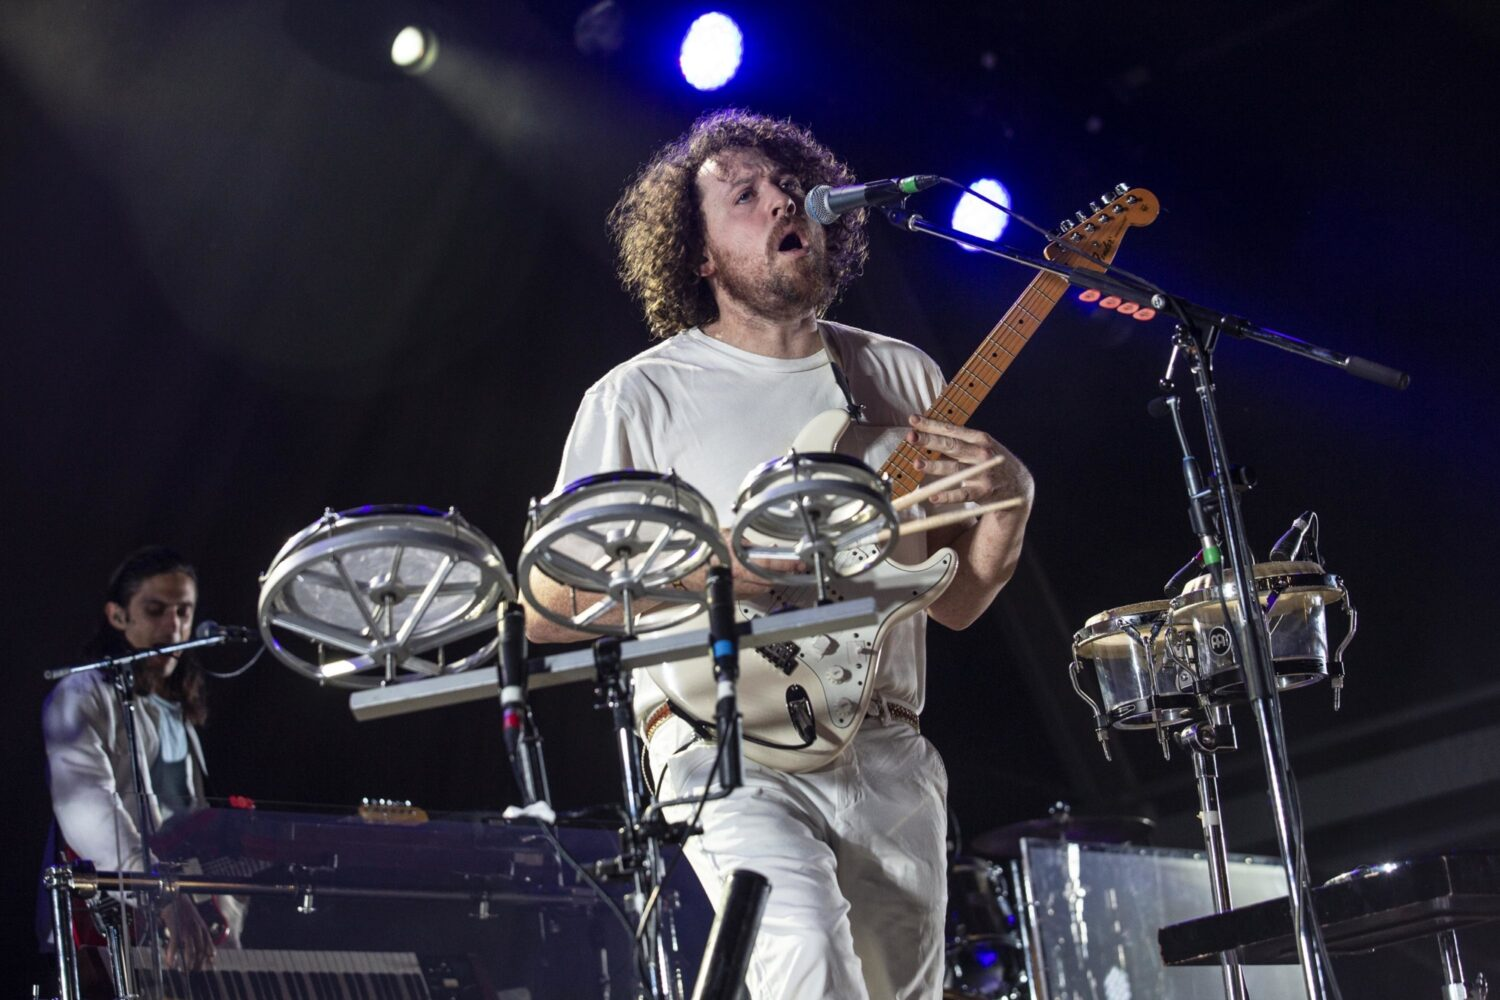 Metronomy, The Horrors, Pet Shop Boys and more lead the Saturday charge at Benicassim